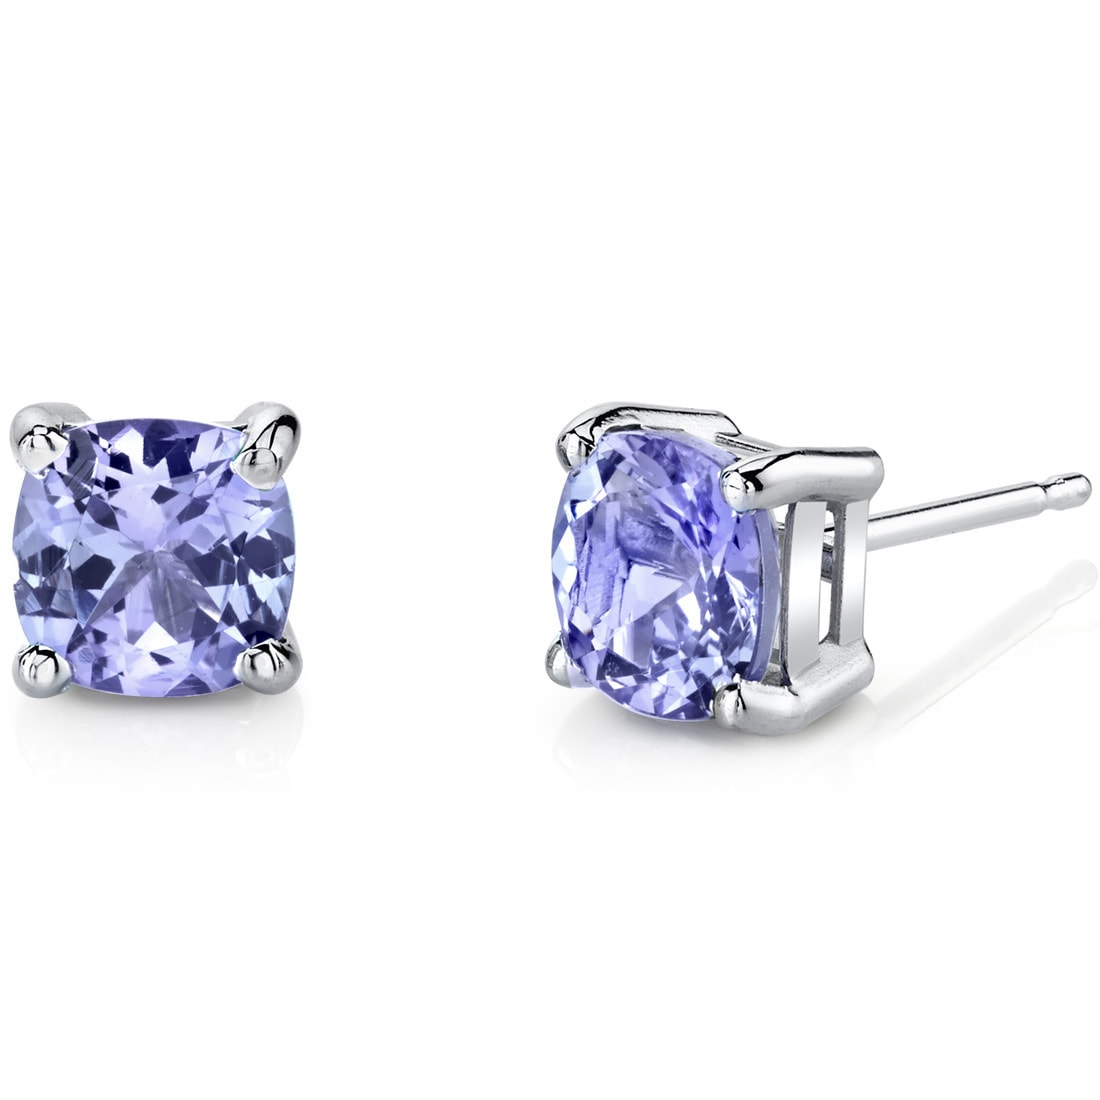 Oravo 14k White Gold 2 00 Carats Tanzanite Cushion Cut Stud Earrings On Free Shipping Today 12390884